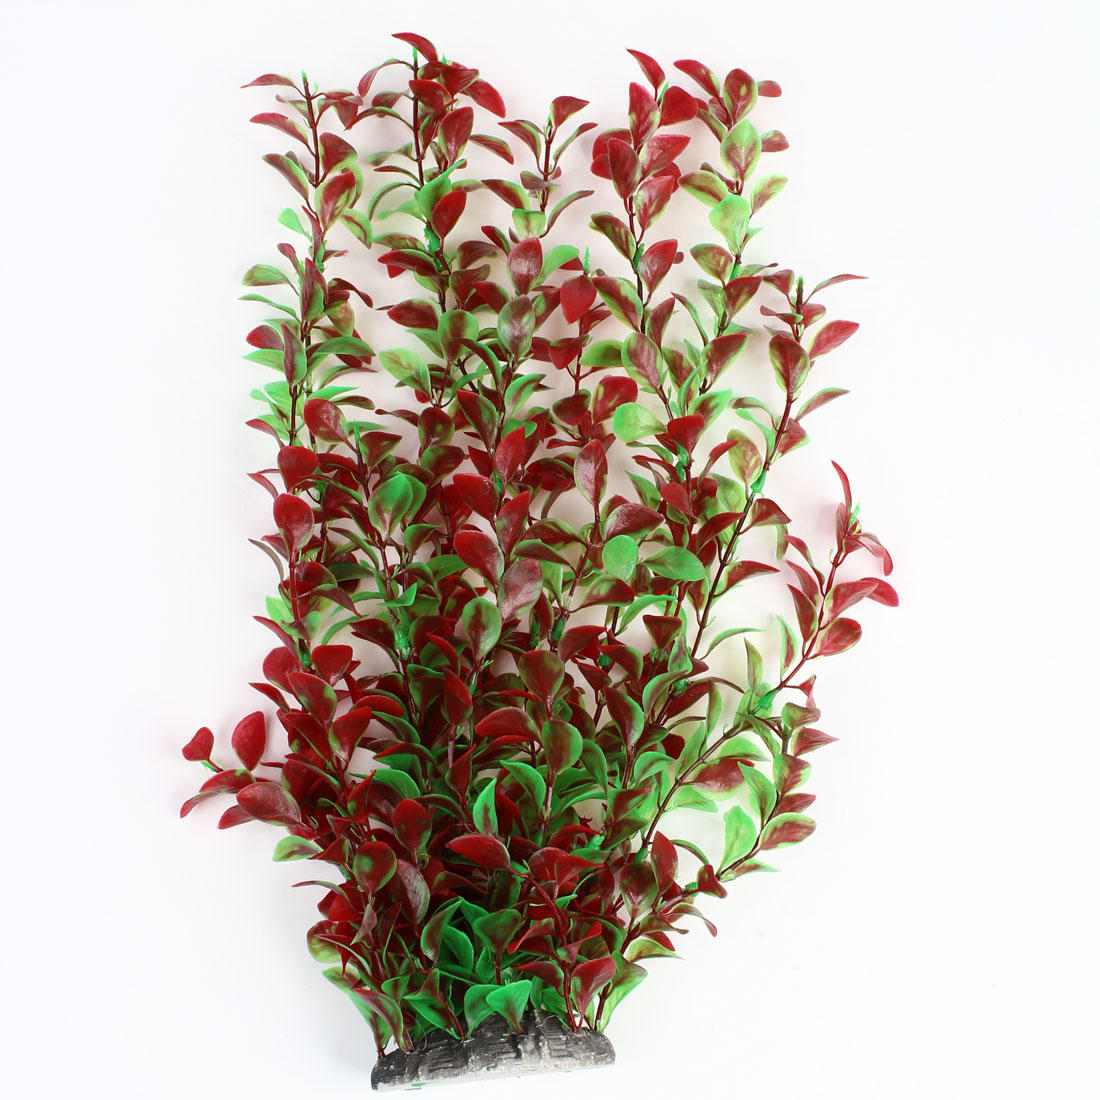 Aquarium Fishtank Decor Ceramic Base Red Green Underwater Plant 14.6""